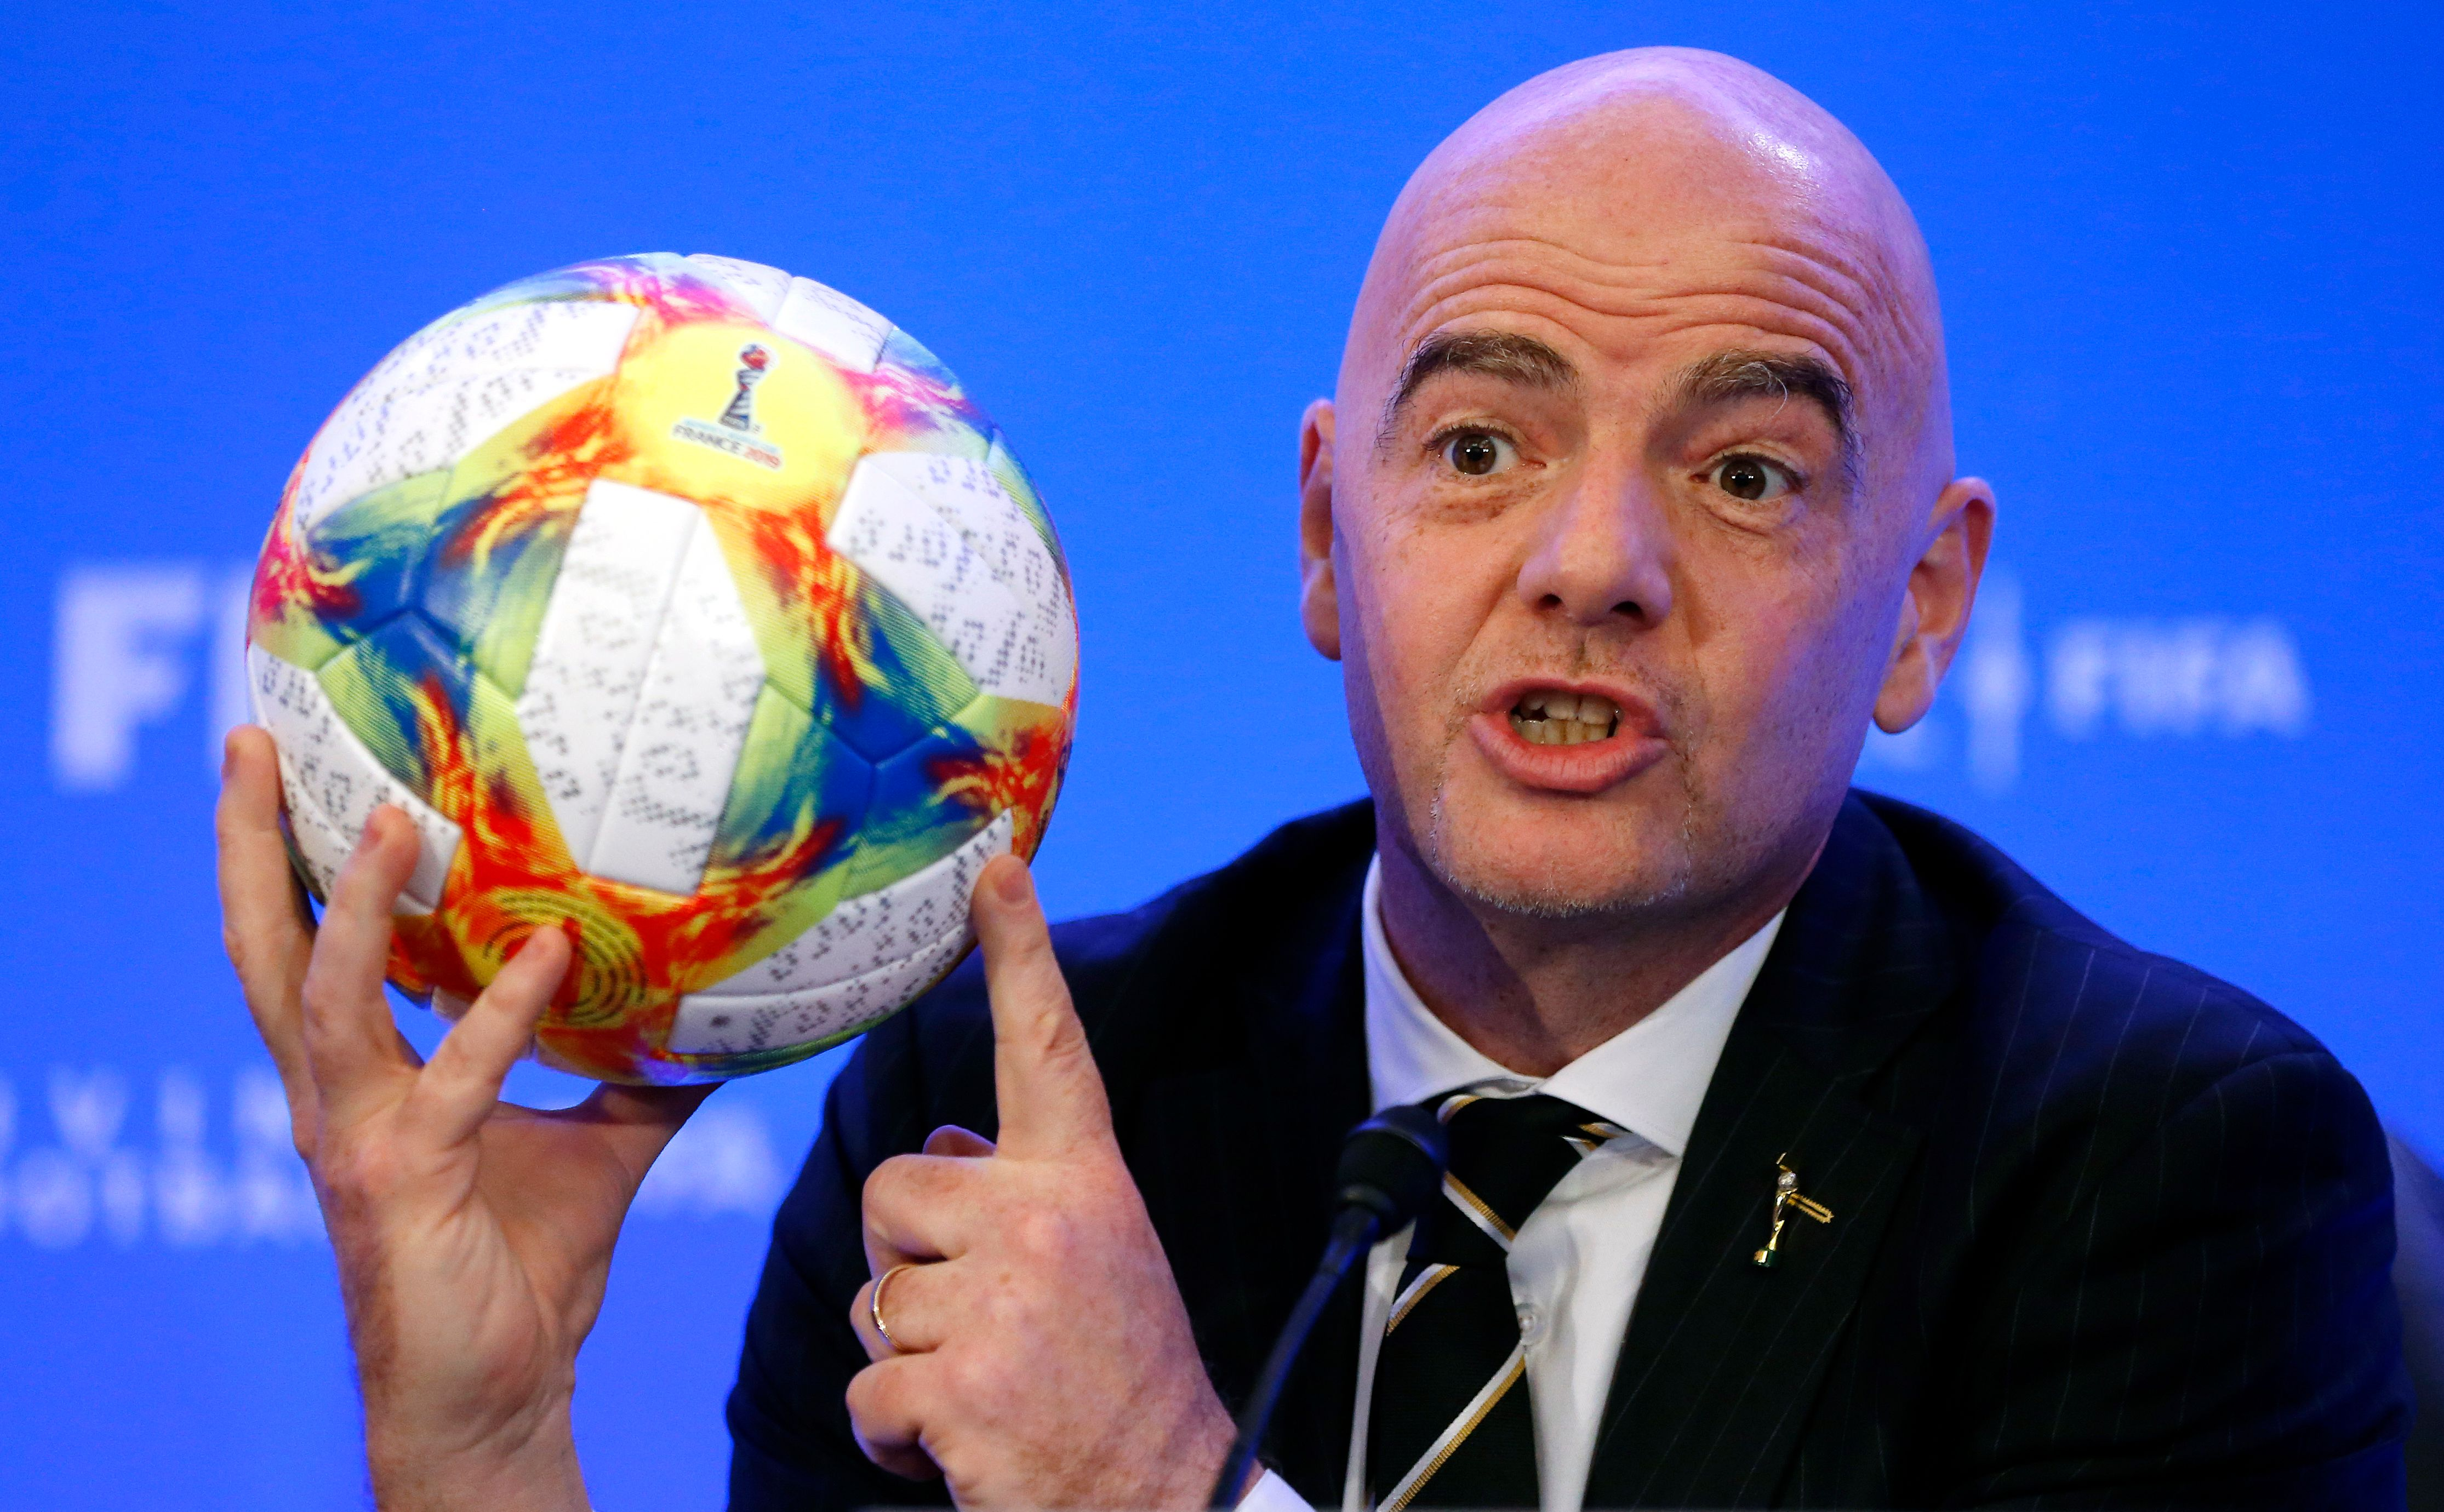 Chelsea among 24 teams expected to compete in new 2021 FIFA Club World Cup in China